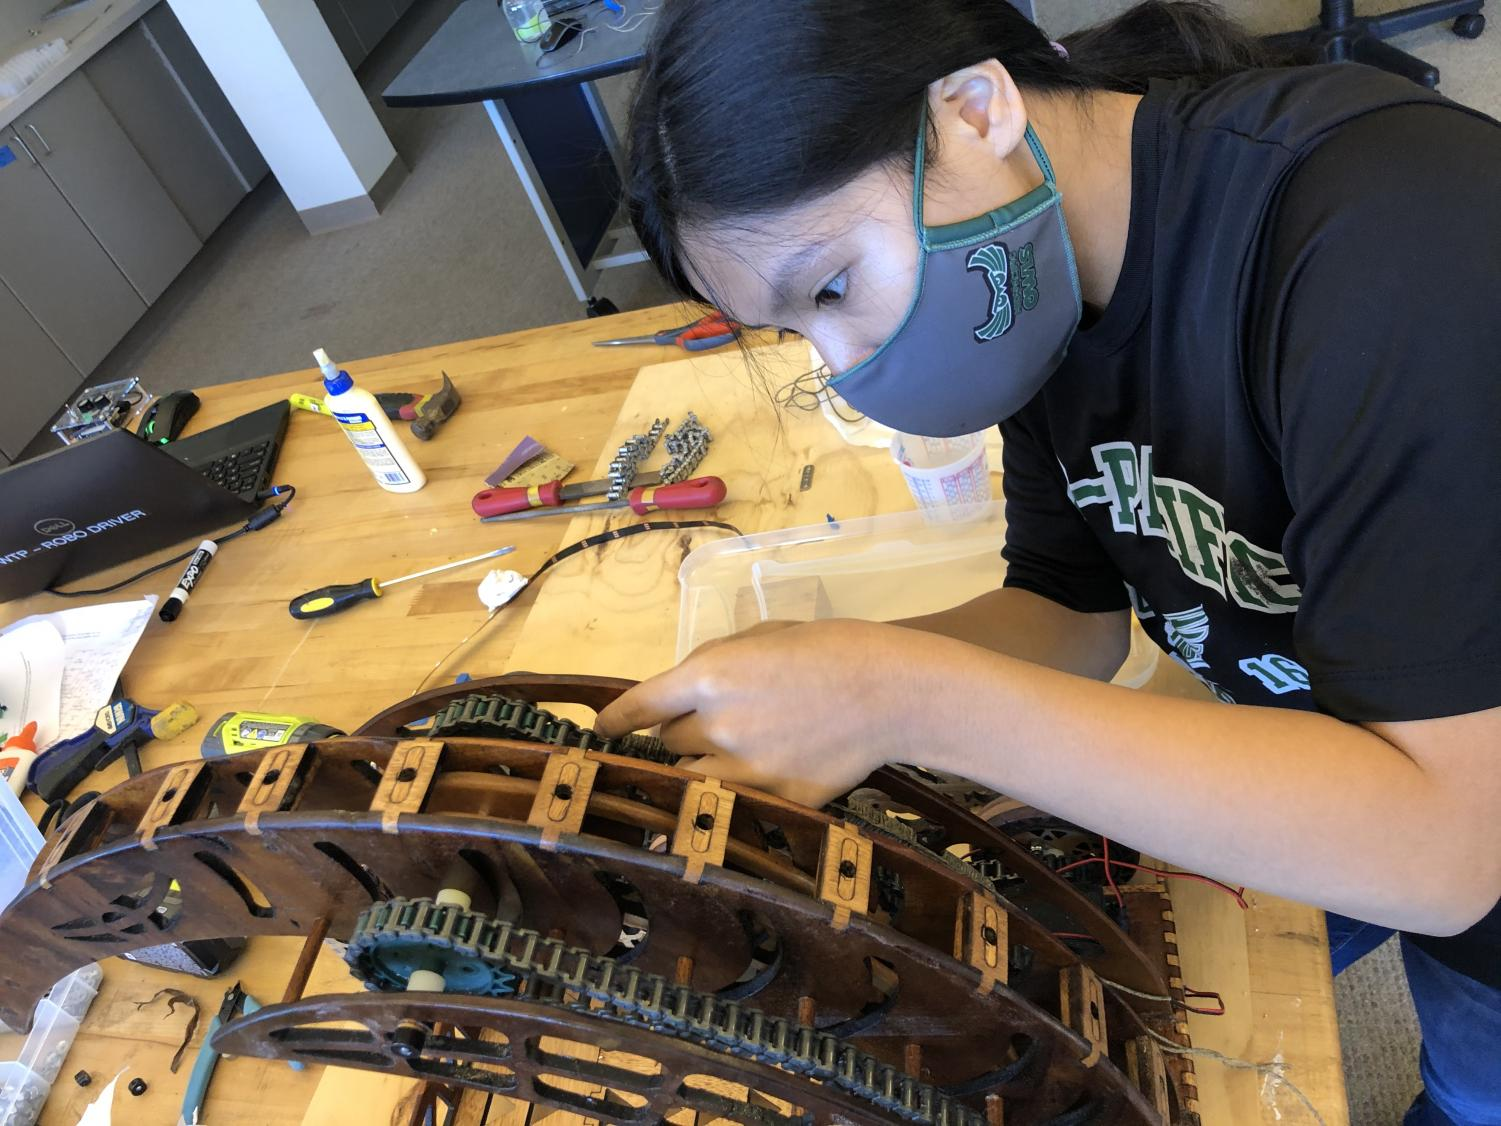 Senior Lauren Jardiolin works on attaching arch bindings to the robot. Teams had to work in groups of three to stay safe during the pandemic while building the robot.